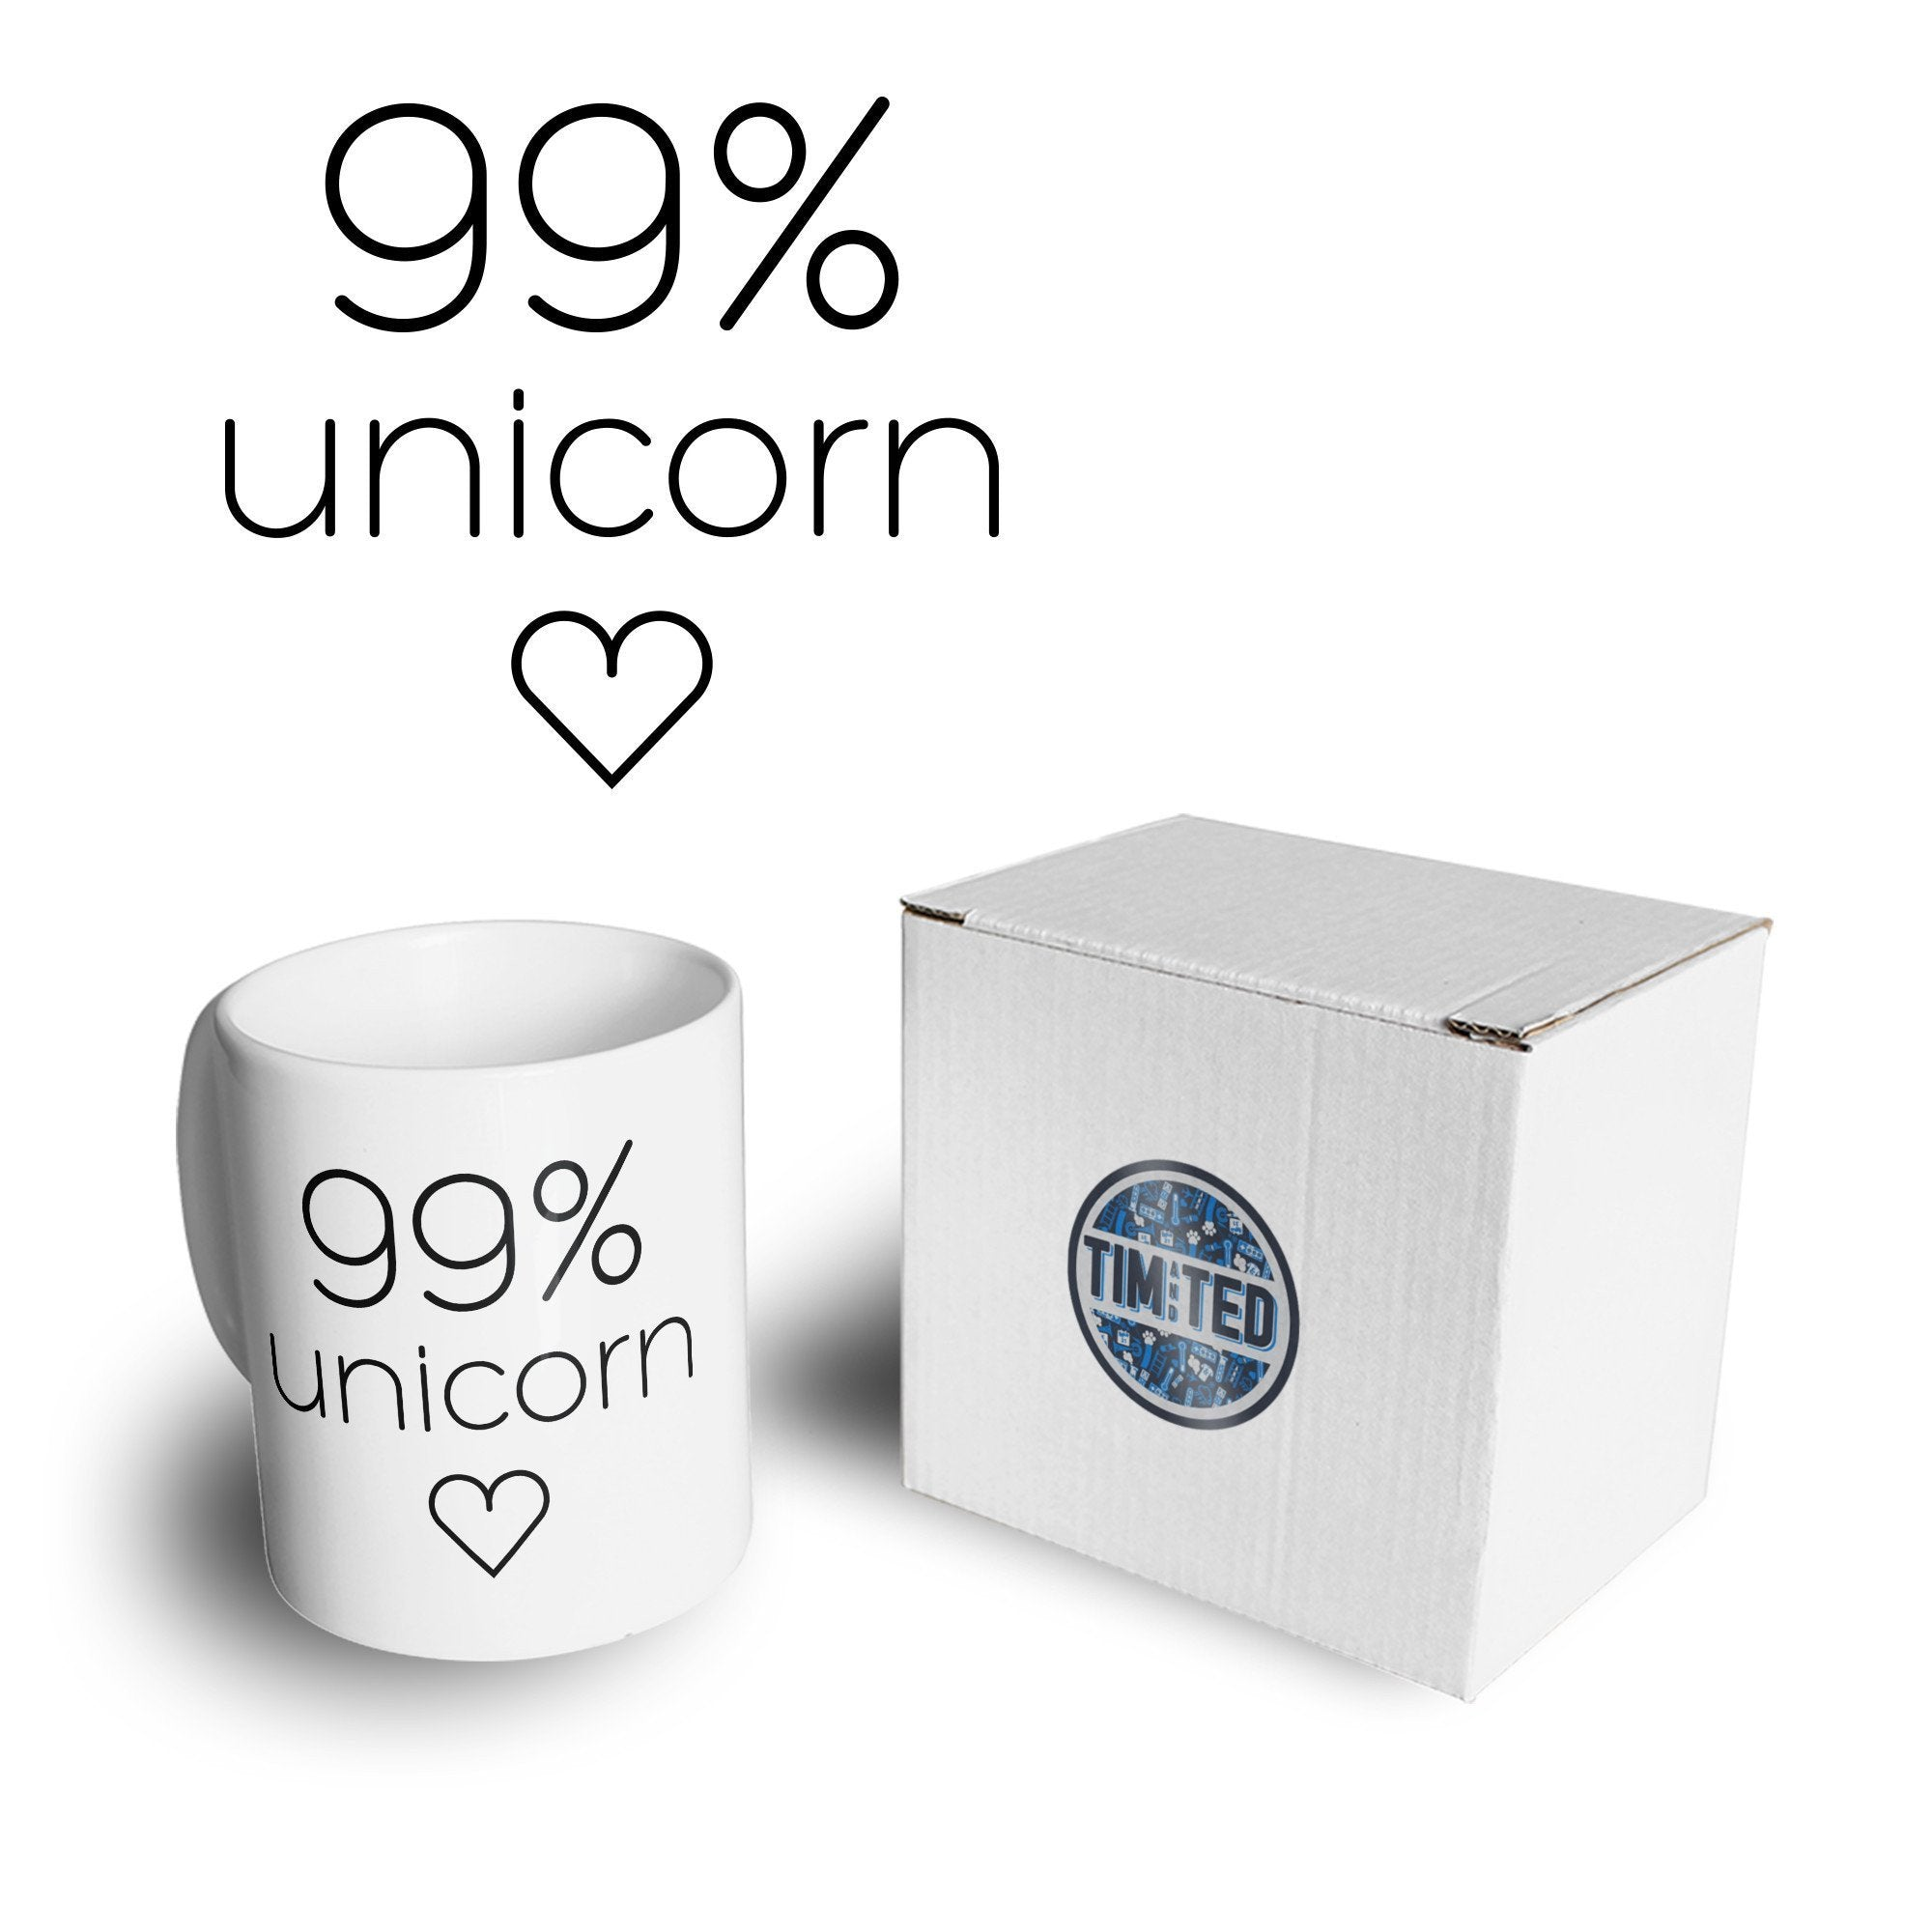 Novelty Mythical Mug 99% Unicorn Heart Slogan Coffee Tea Cup